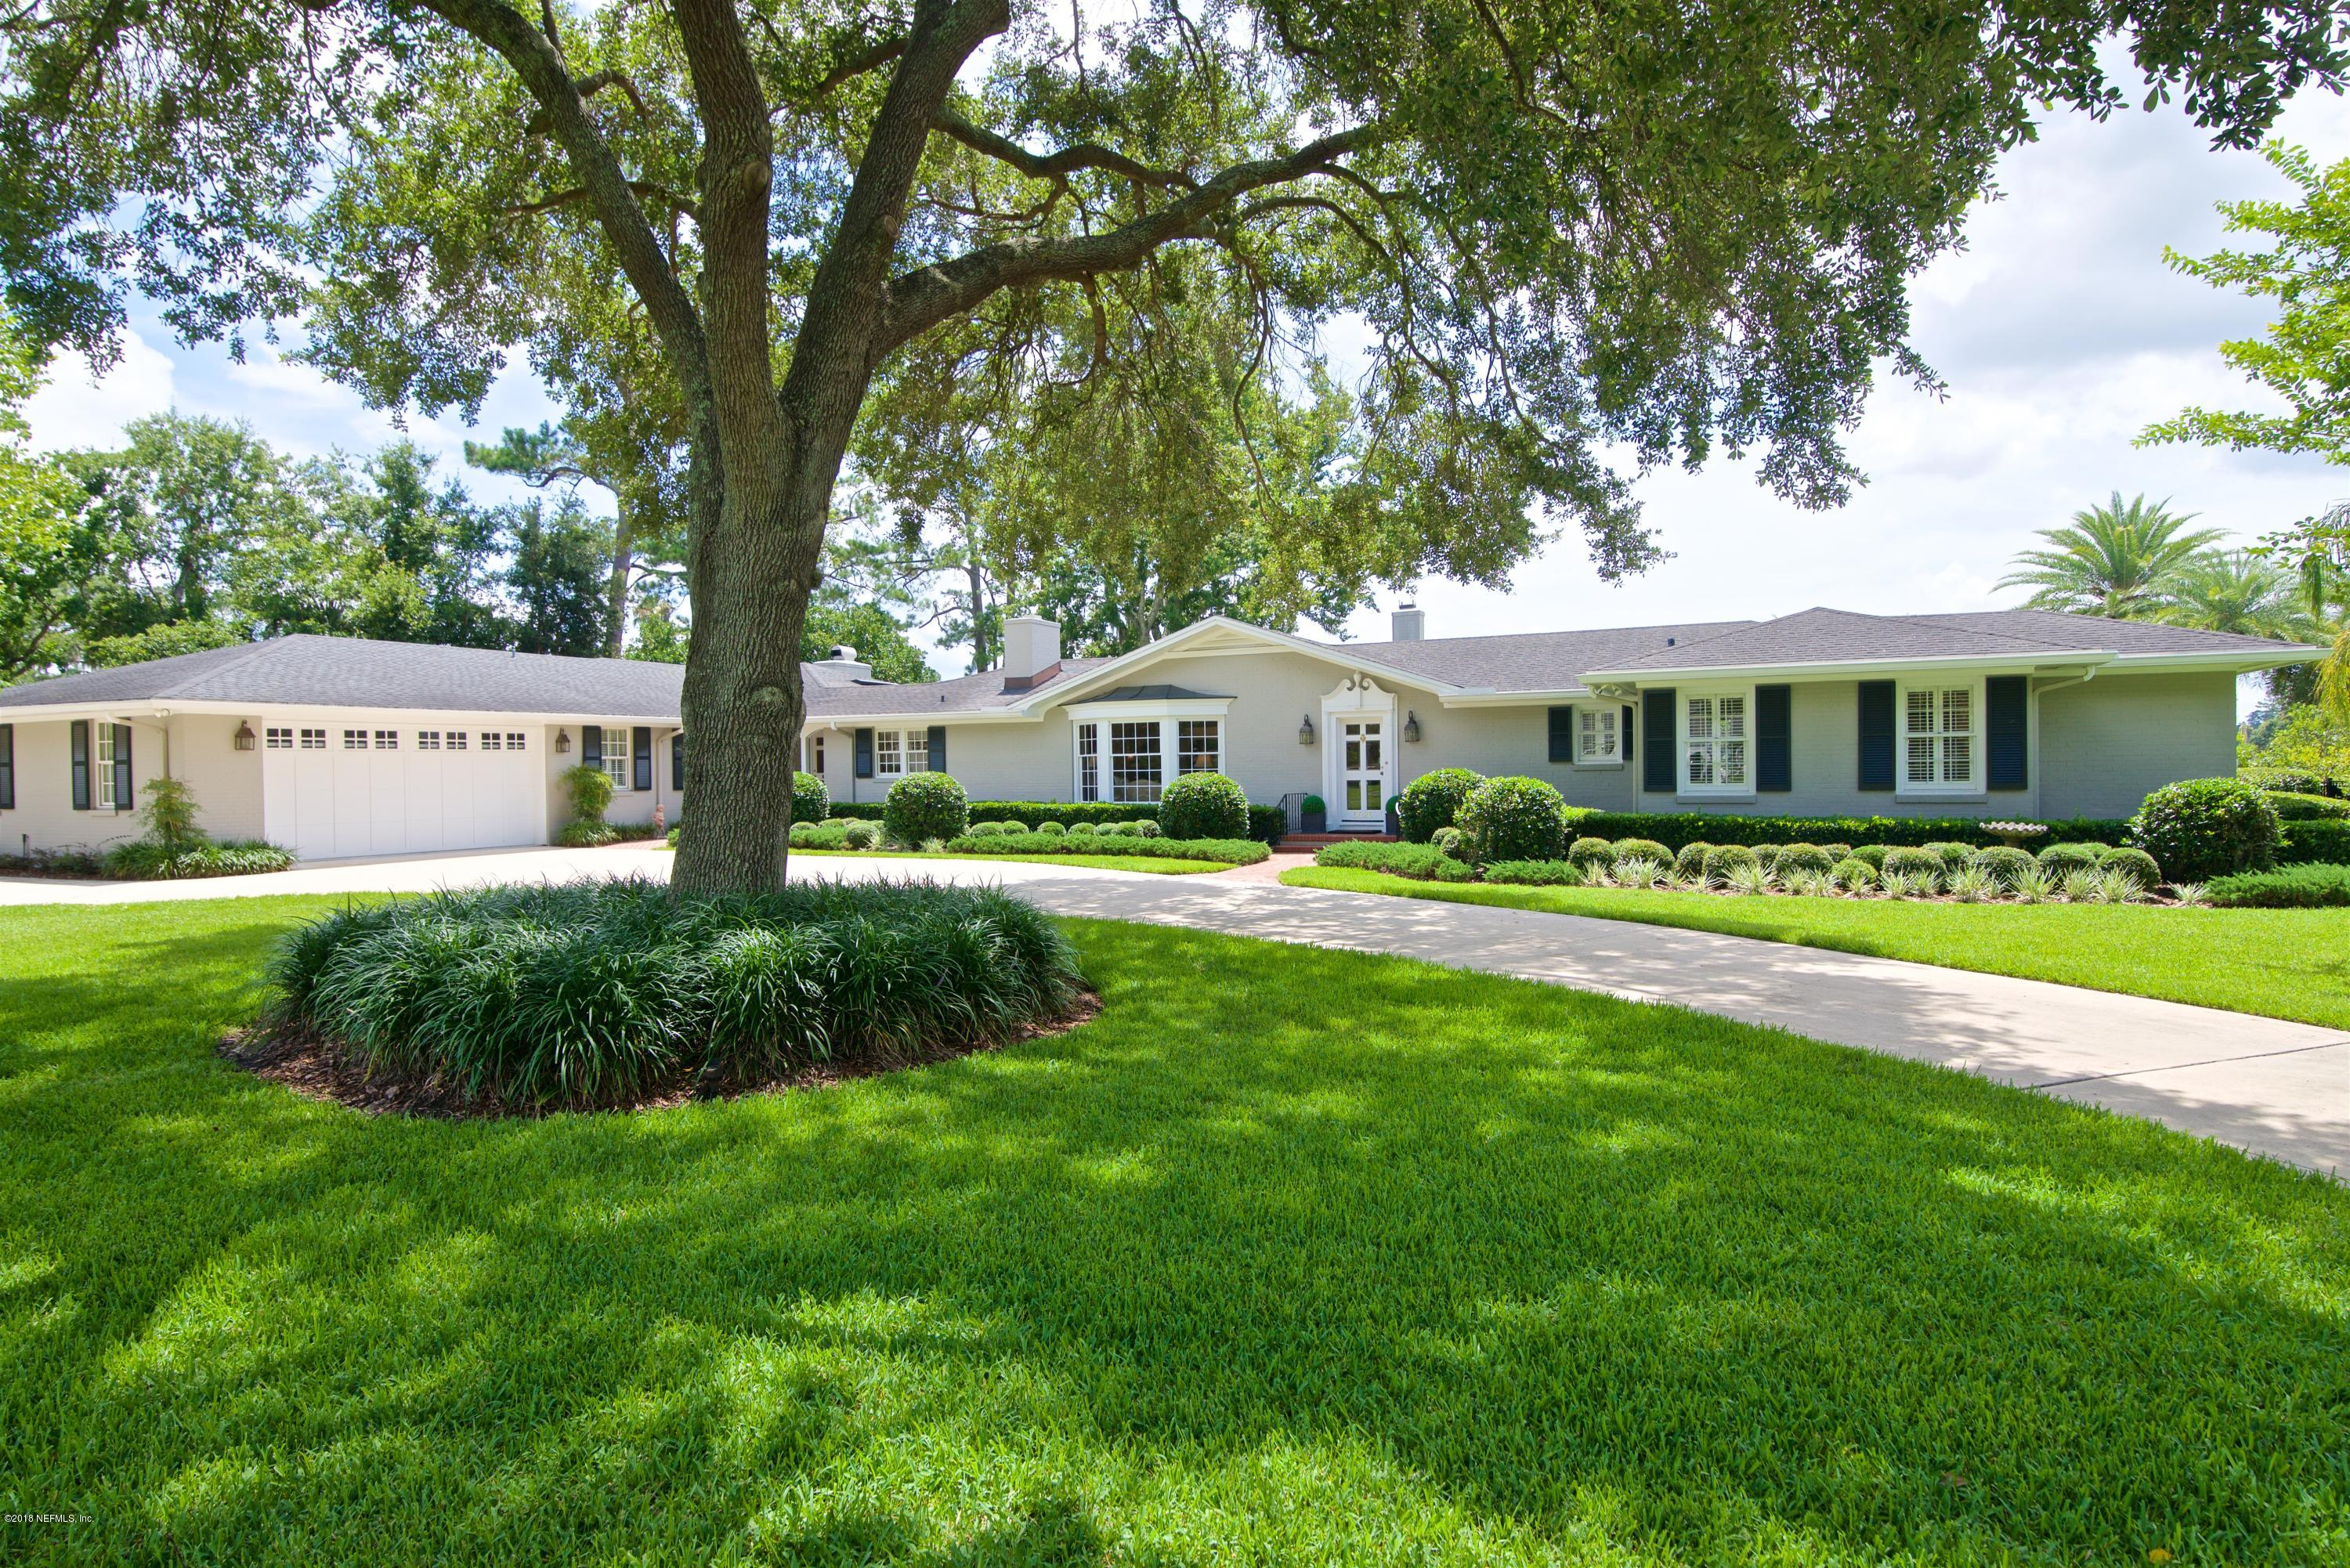 5025 PIRATES COVE, JACKSONVILLE, FLORIDA 32210, 4 Bedrooms Bedrooms, ,5 BathroomsBathrooms,Residential - single family,For sale,PIRATES COVE,947655